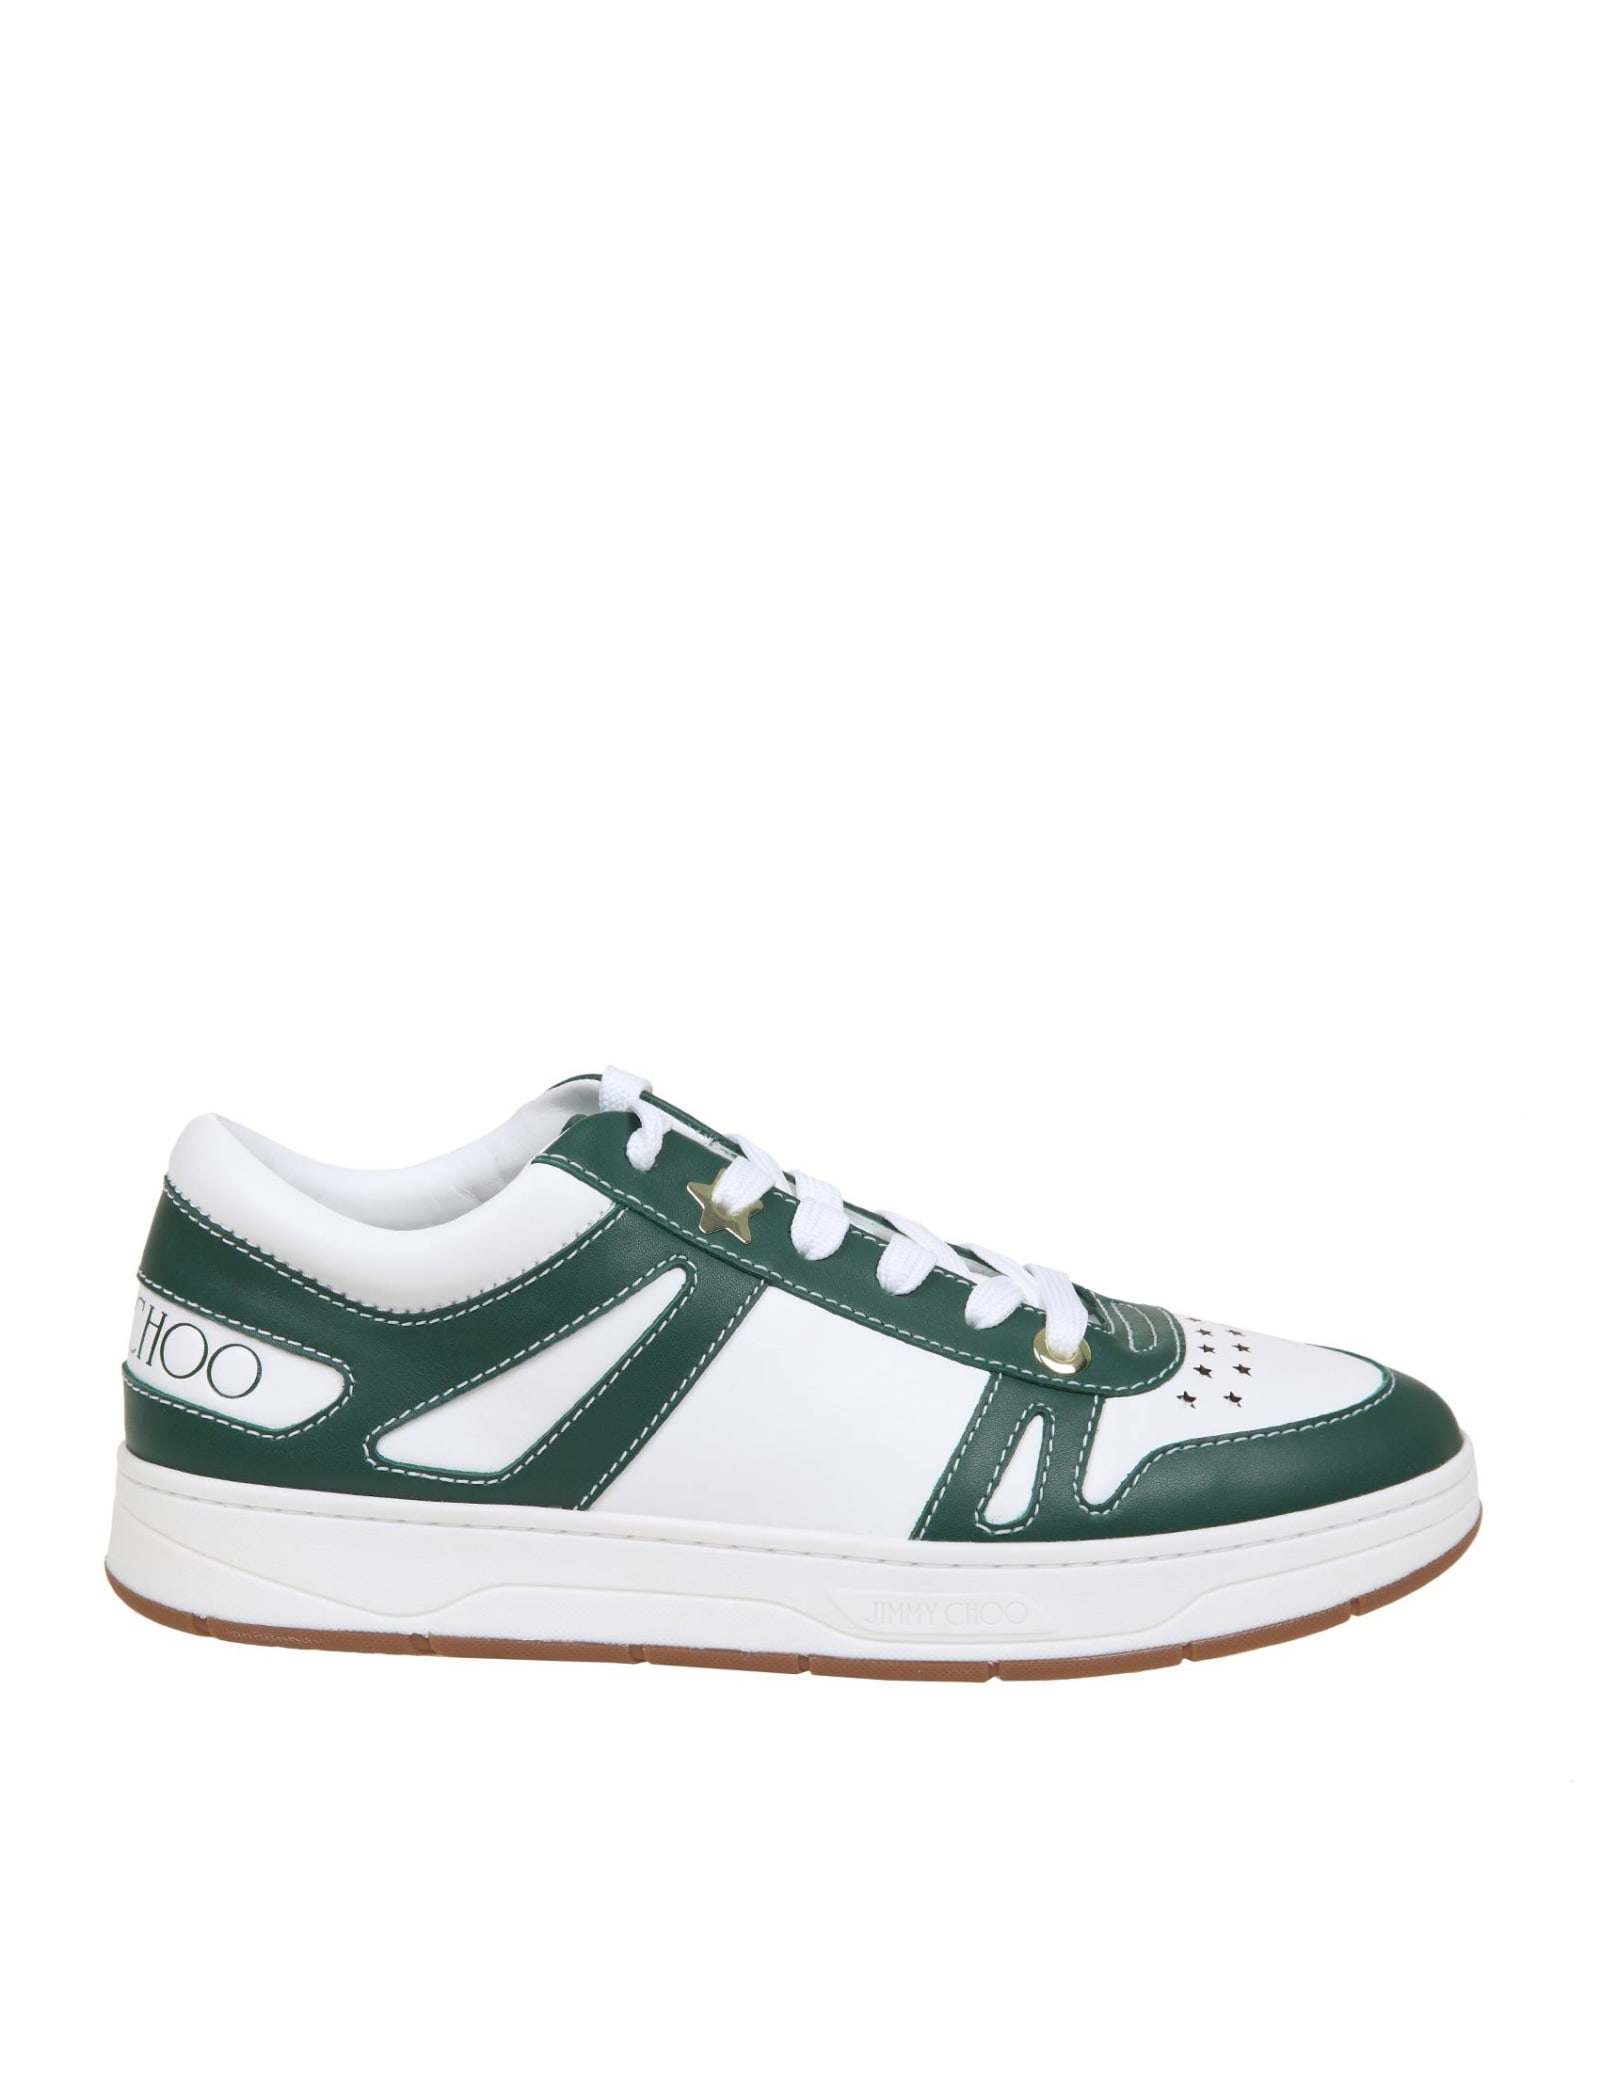 Jimmy Choo HAWAII / M SNEAKERS IN WHITE AND GREEN LEATHER